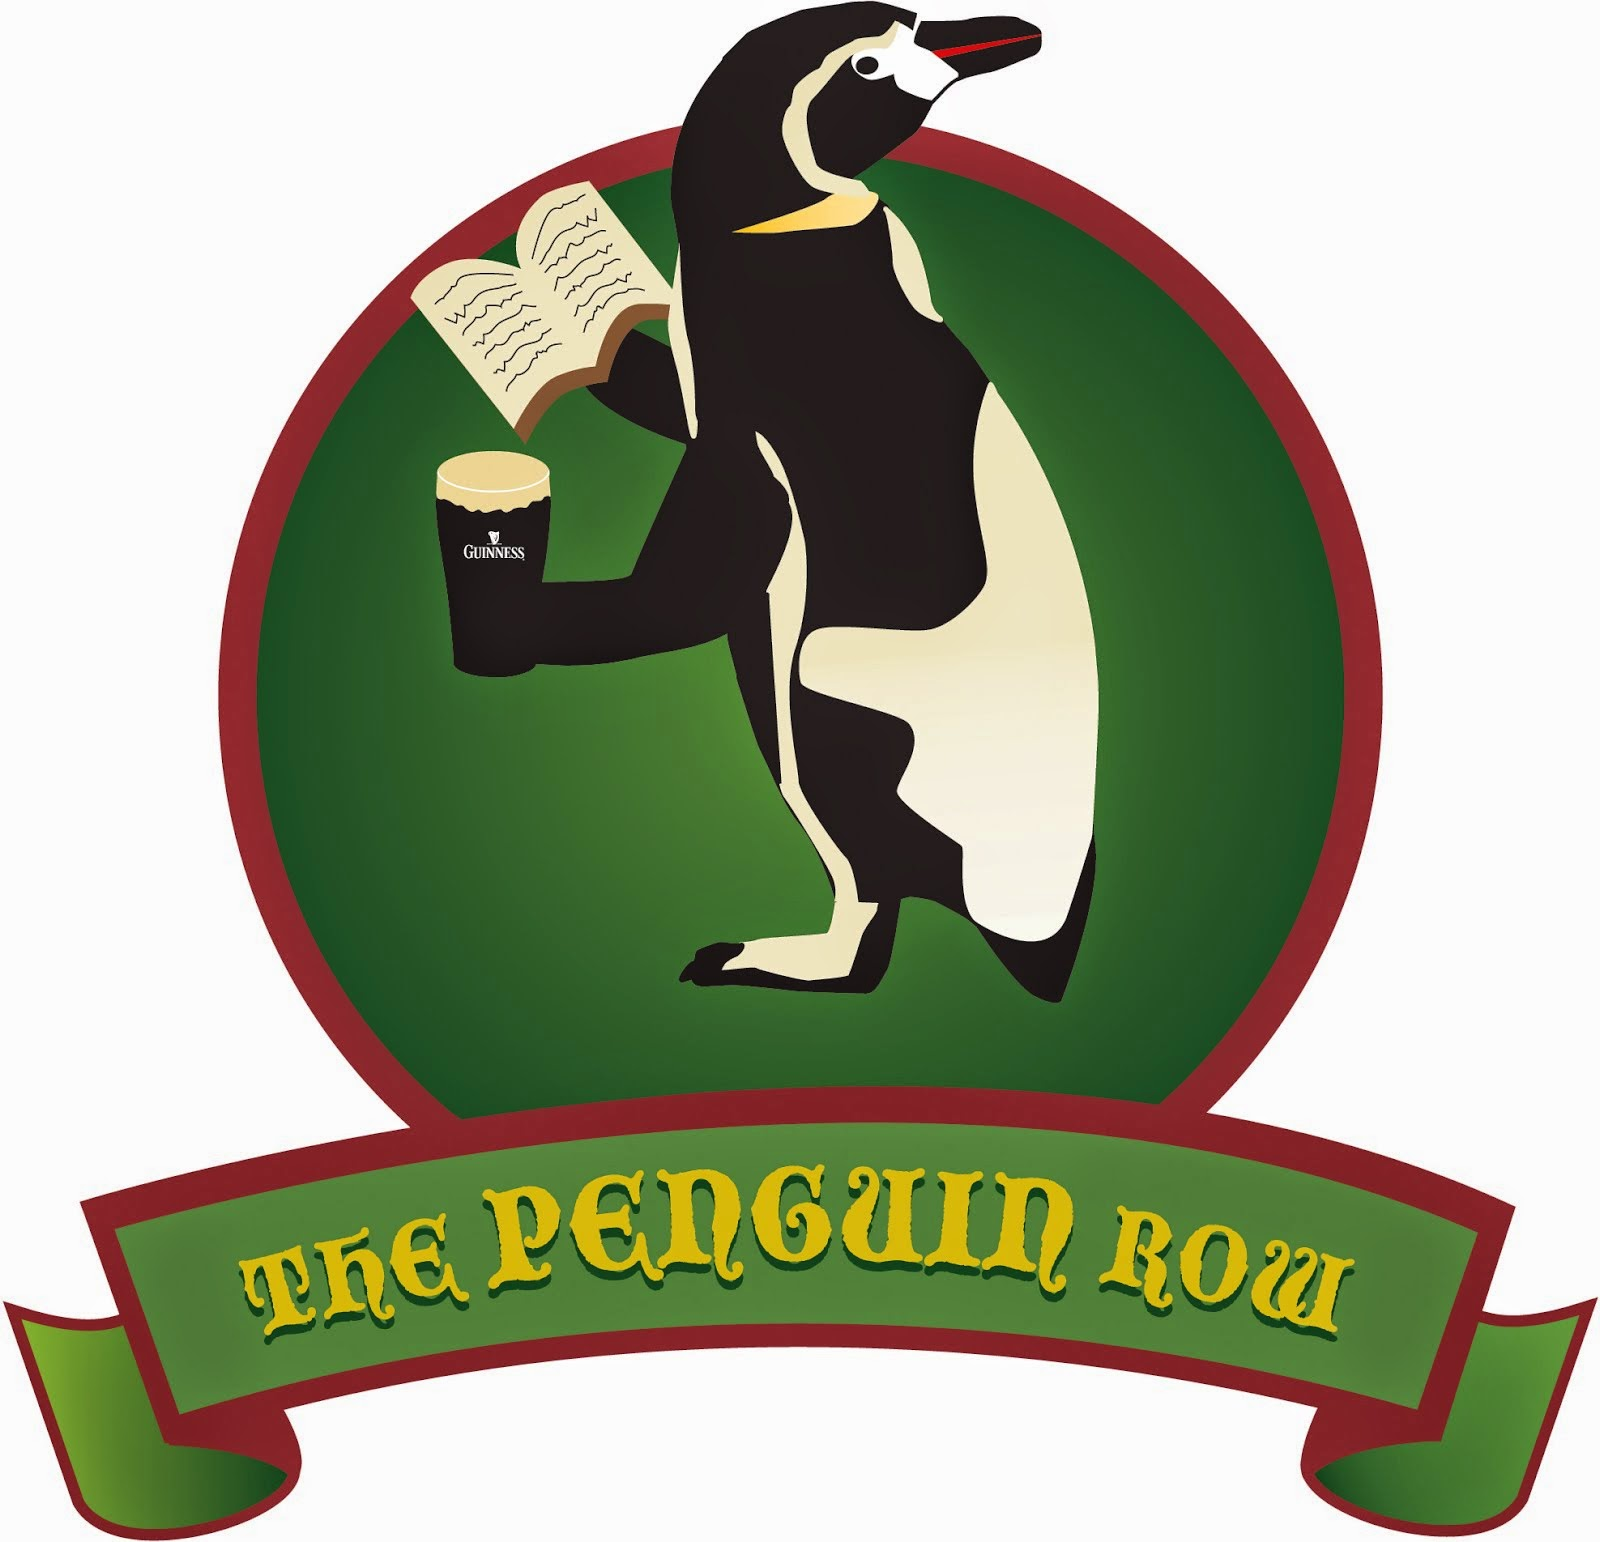 Pub The Penguin Row